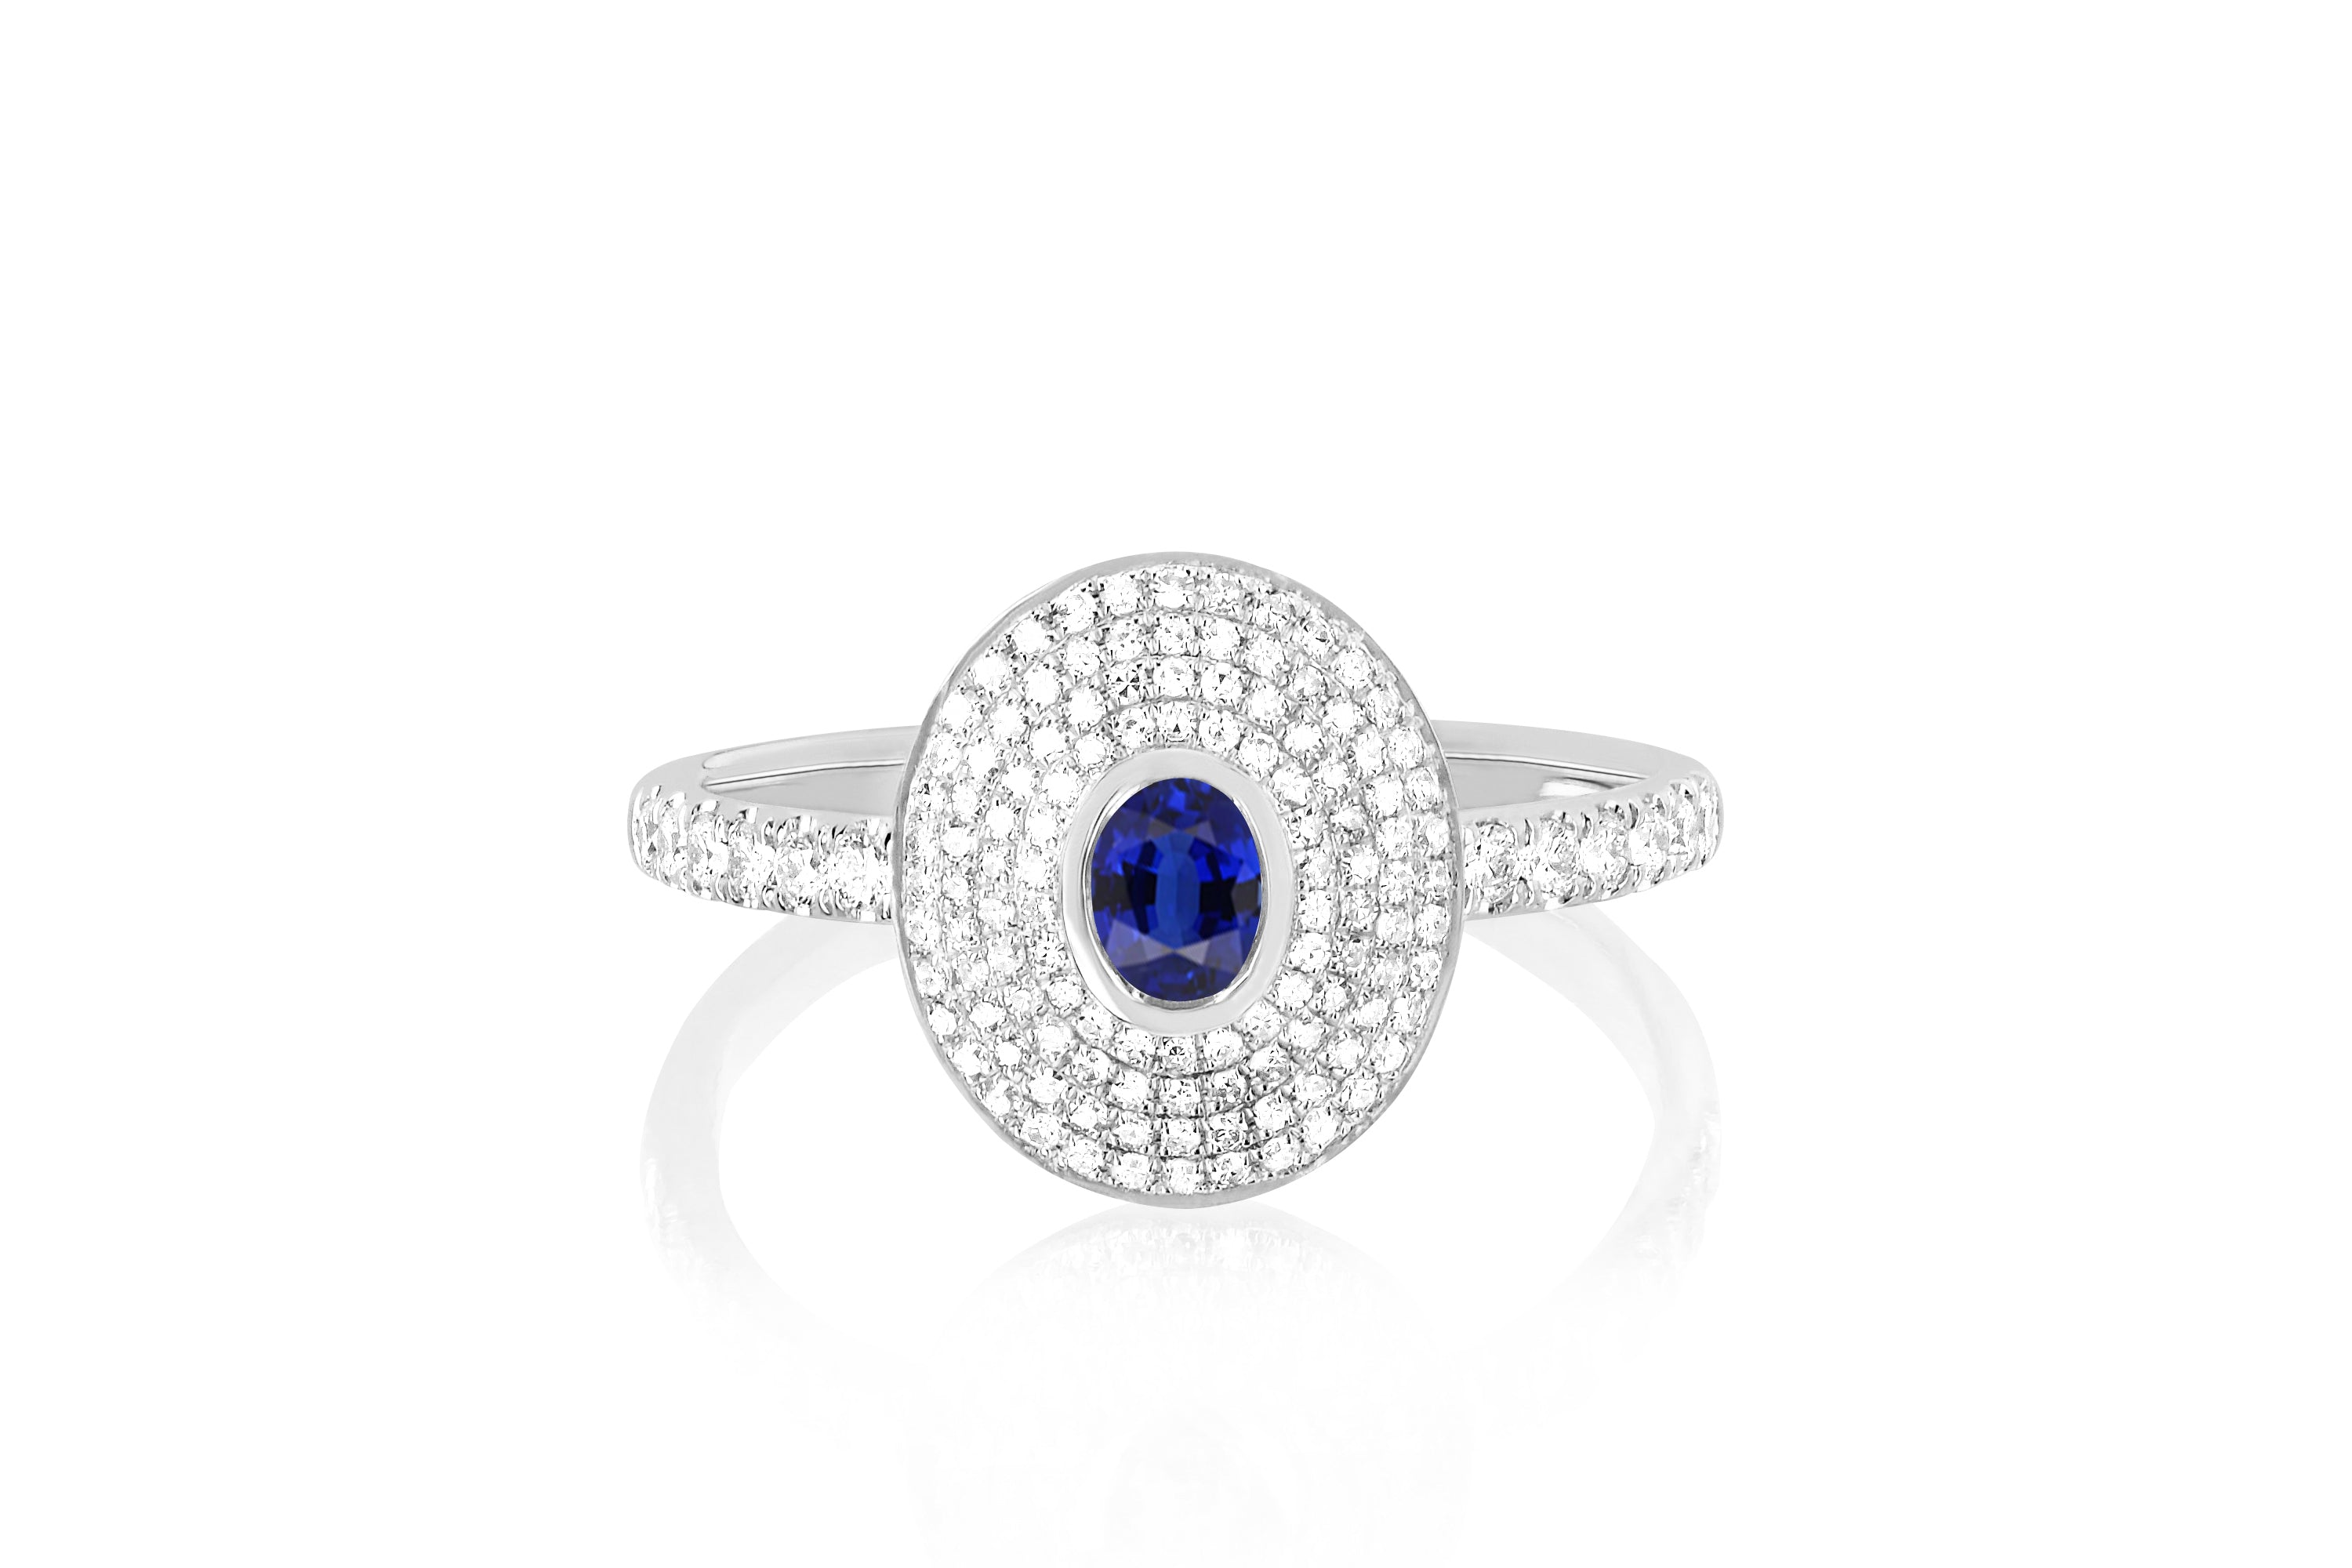 Diamond & Blue Sapphire Center Oval Ring